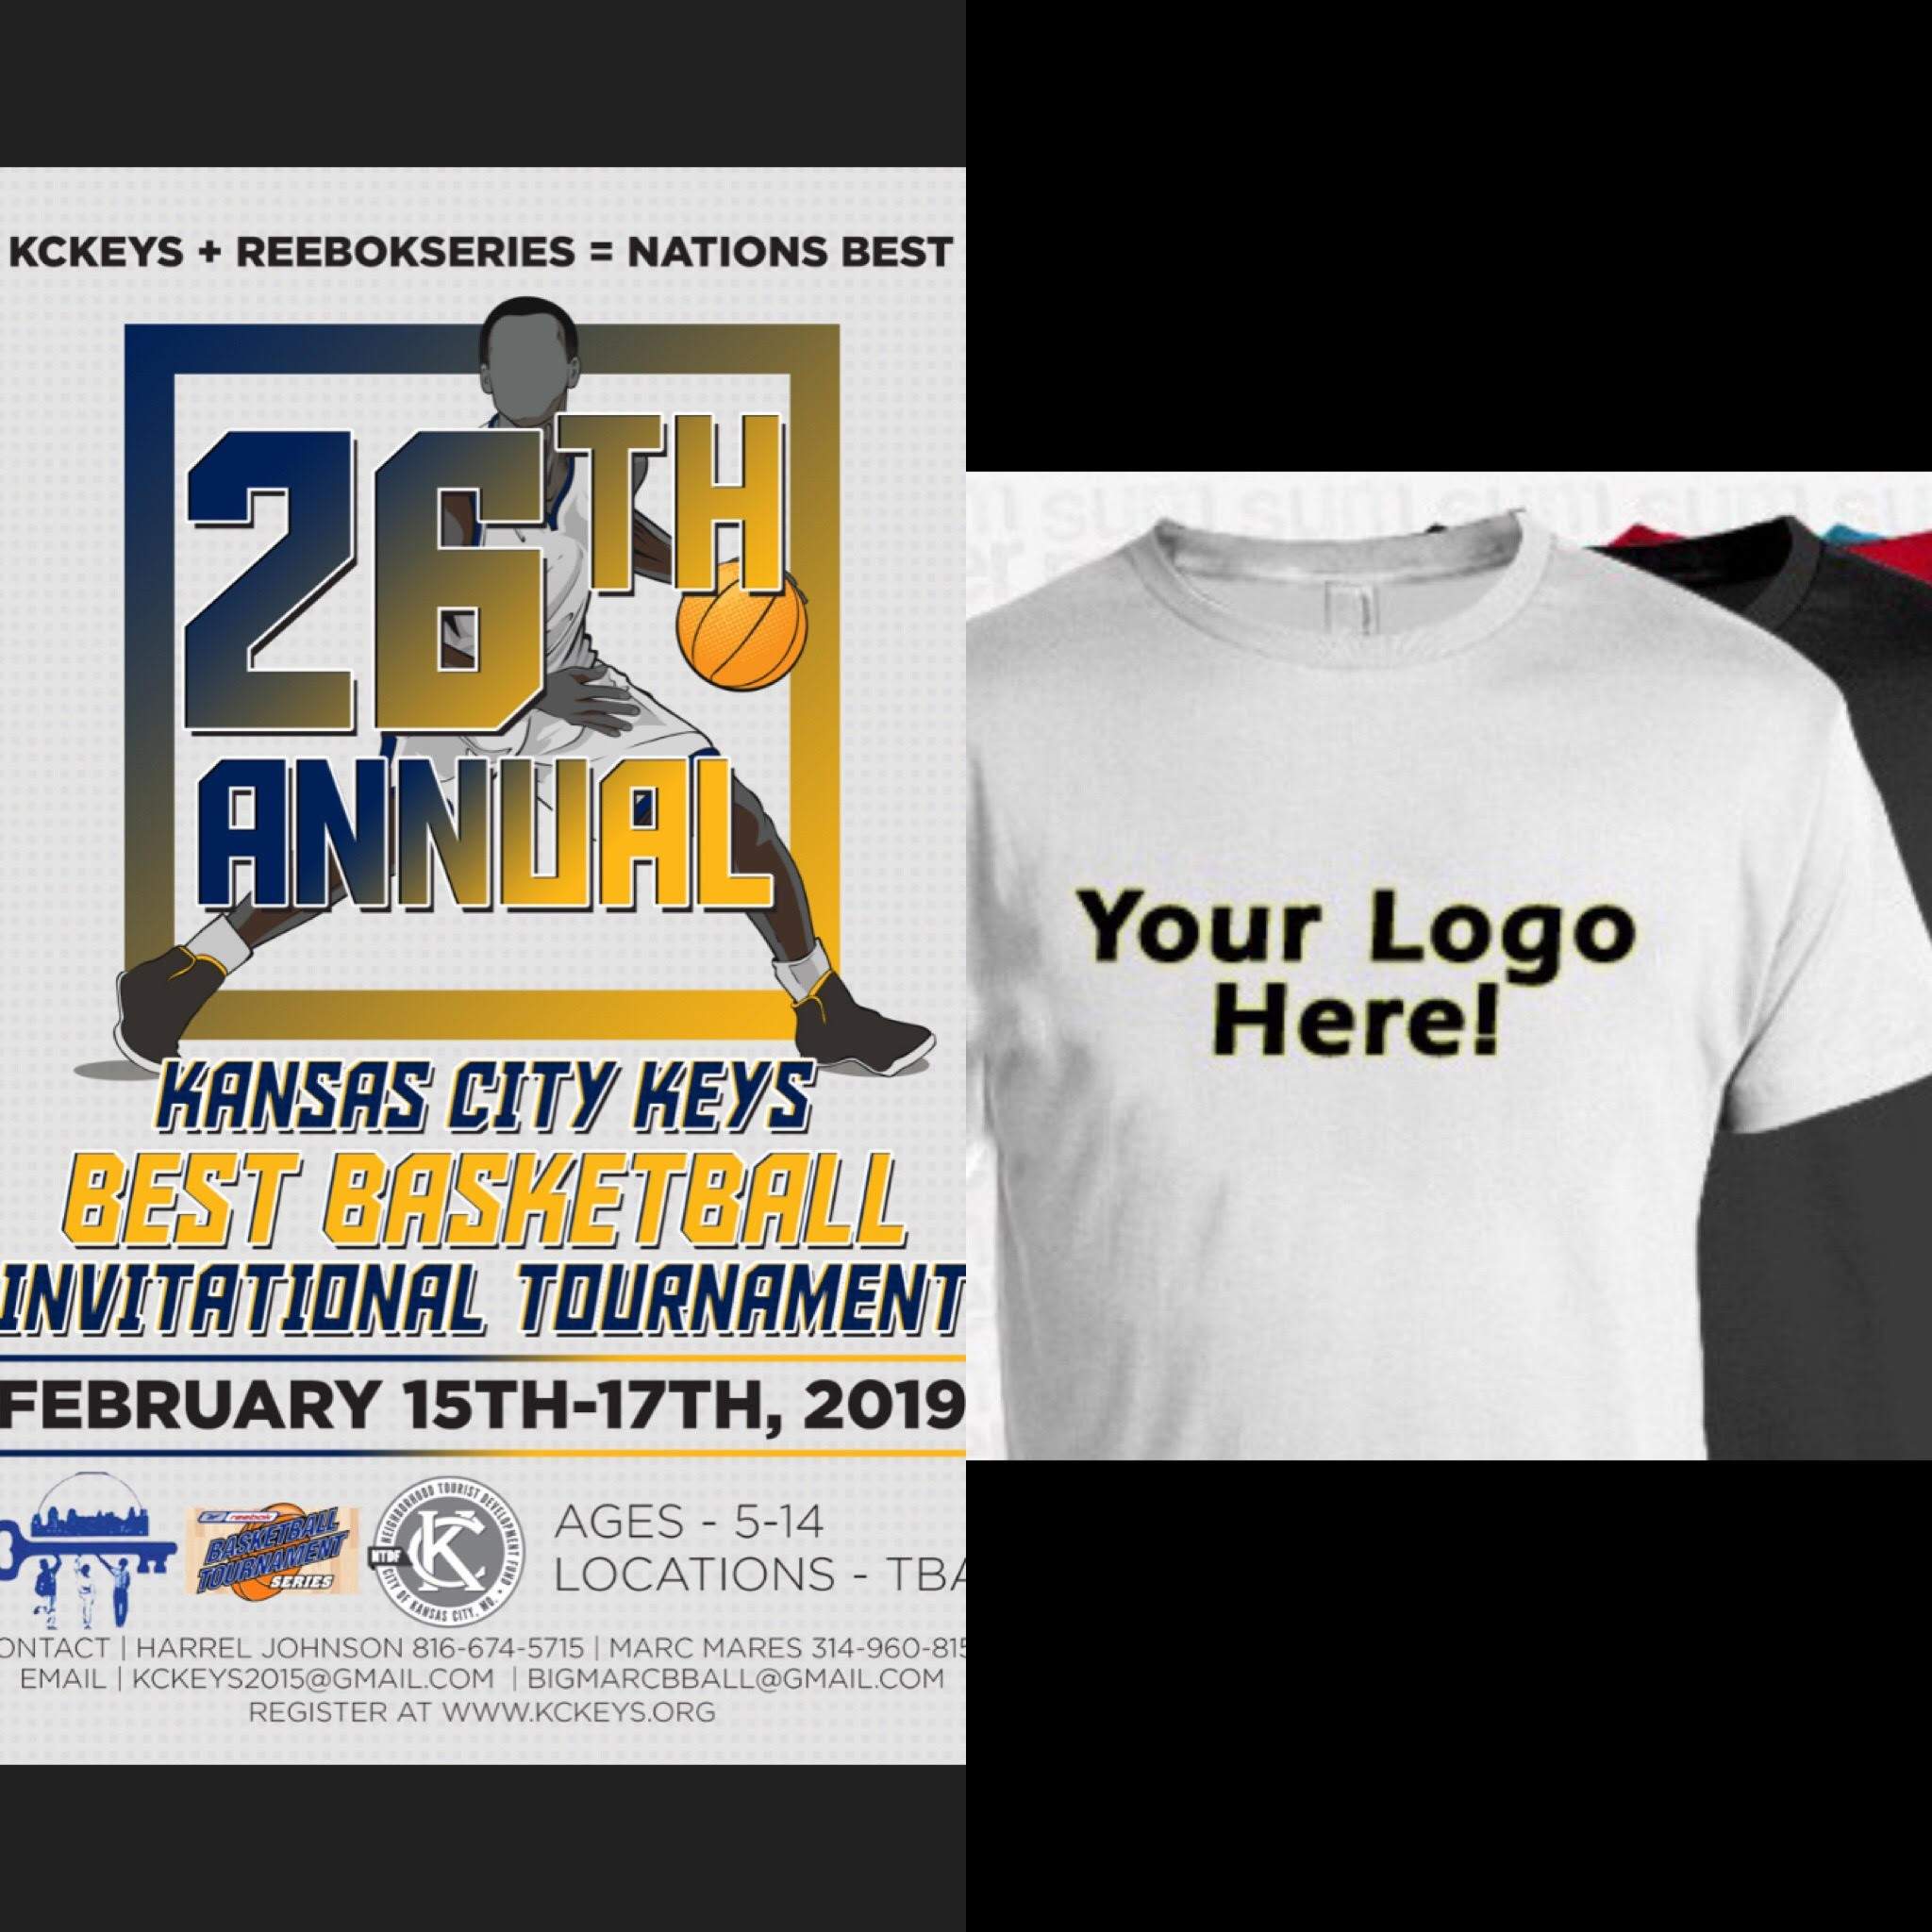 KC Keys 26th Best Basketball Invitational Tournament - The Kansas City Keys are looking for 10 companies to donate $100 for the KC Keys 26th Best Basketball Invitational Tournament. With the donation, your company will be advertised on our tournament t-shirt.